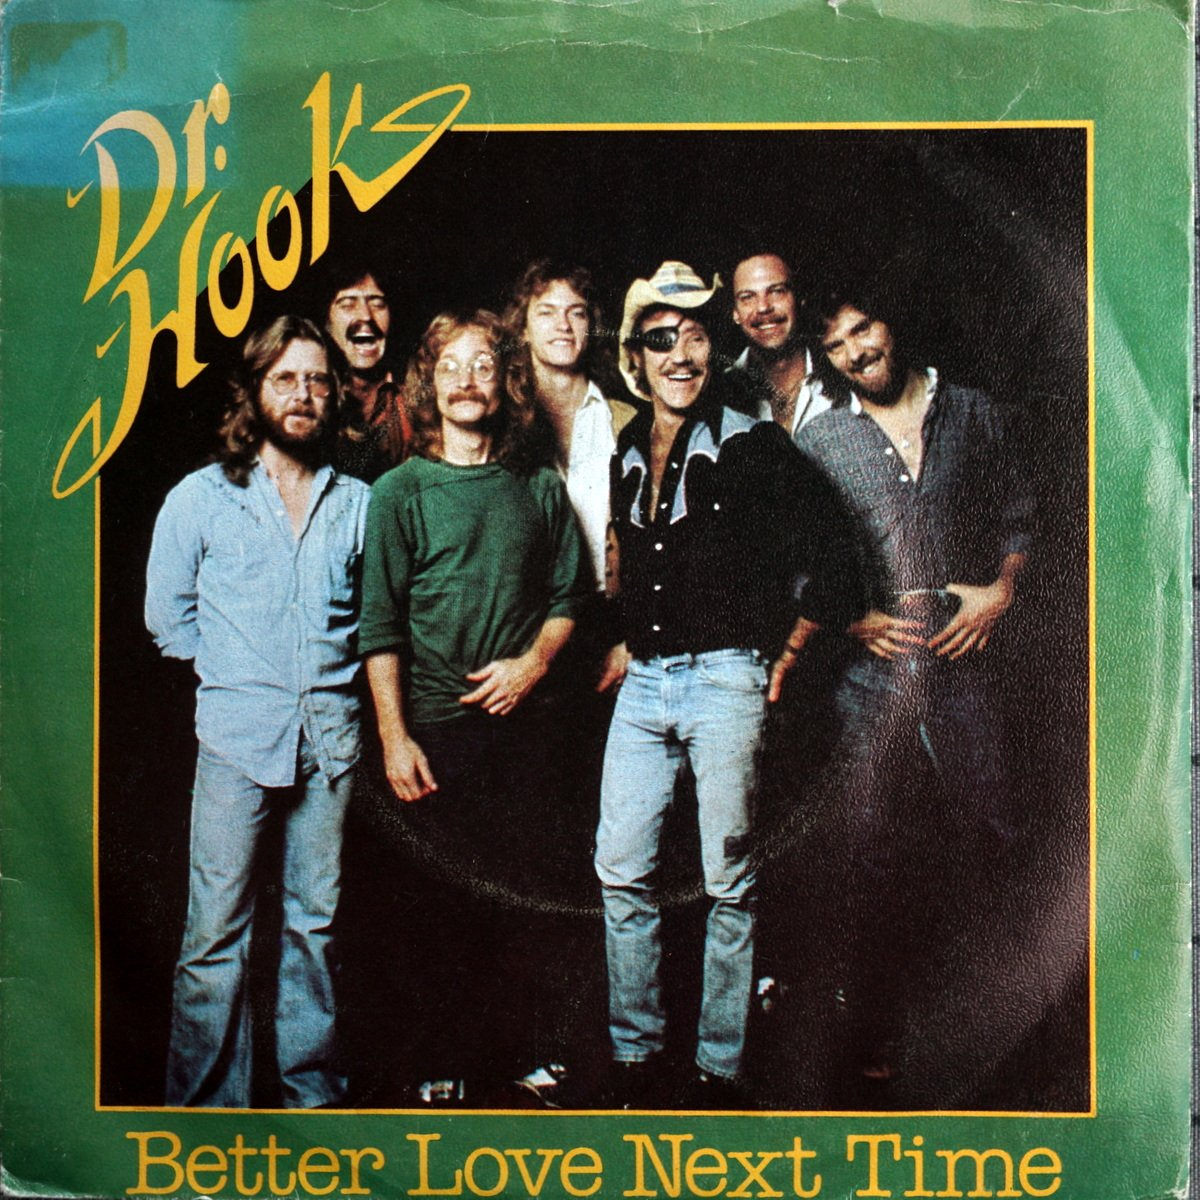 S SW A1 - 7C 006-86055 Green Cover - Better Love Next Time - 1979 - Sc